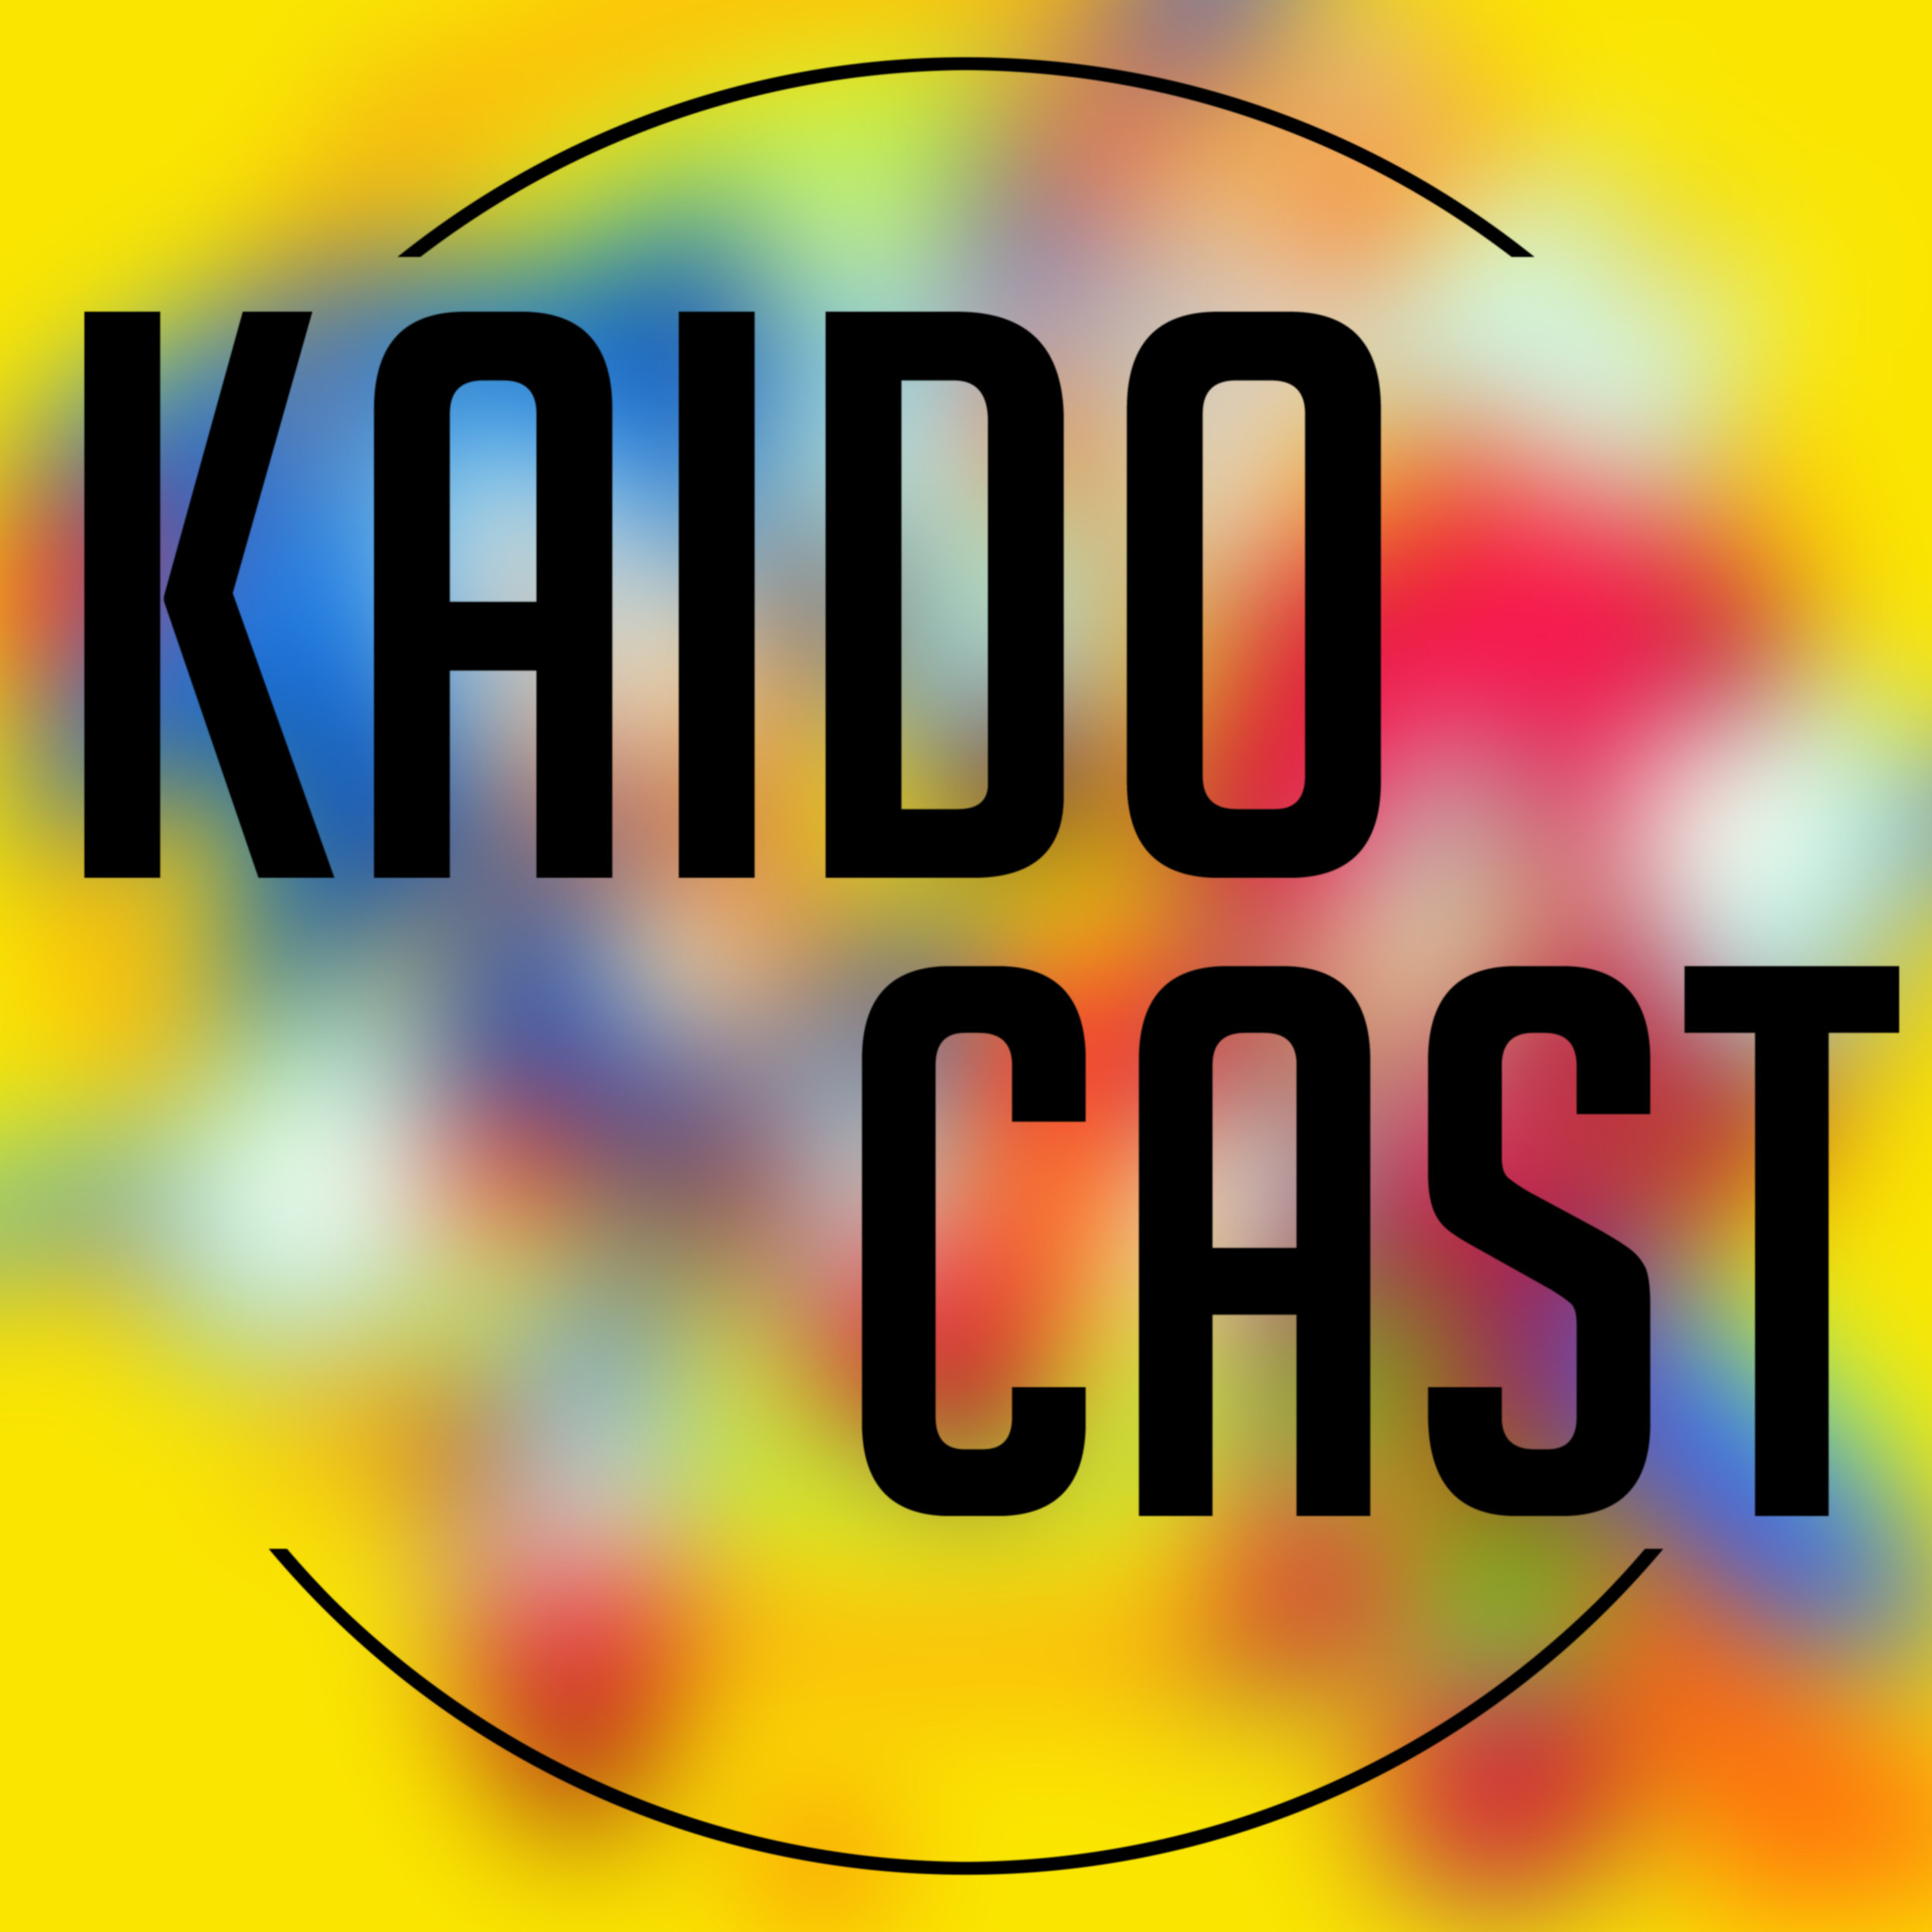 KAIDO Cast 11 - How Powerful is This French Bread? - This week we focus on the new. Dave has to go fast, Rob traps at night, and Zac is still crazy... I thought this was new?